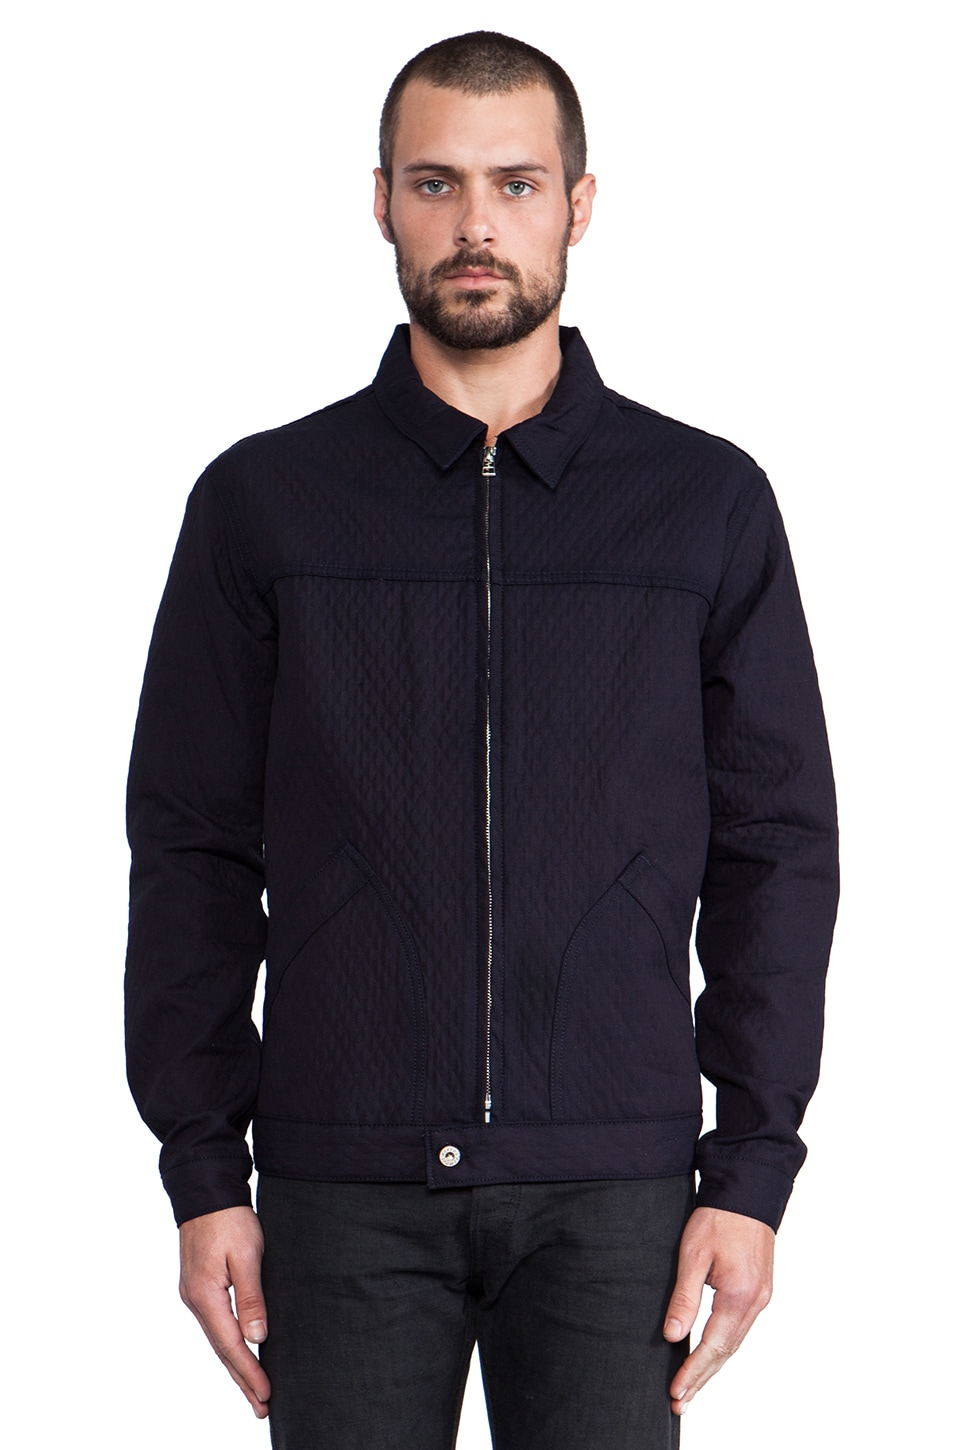 Naked & Famous Denim Zip Jacket Quilted Doubleface Denim in Navy w/Multi Interior